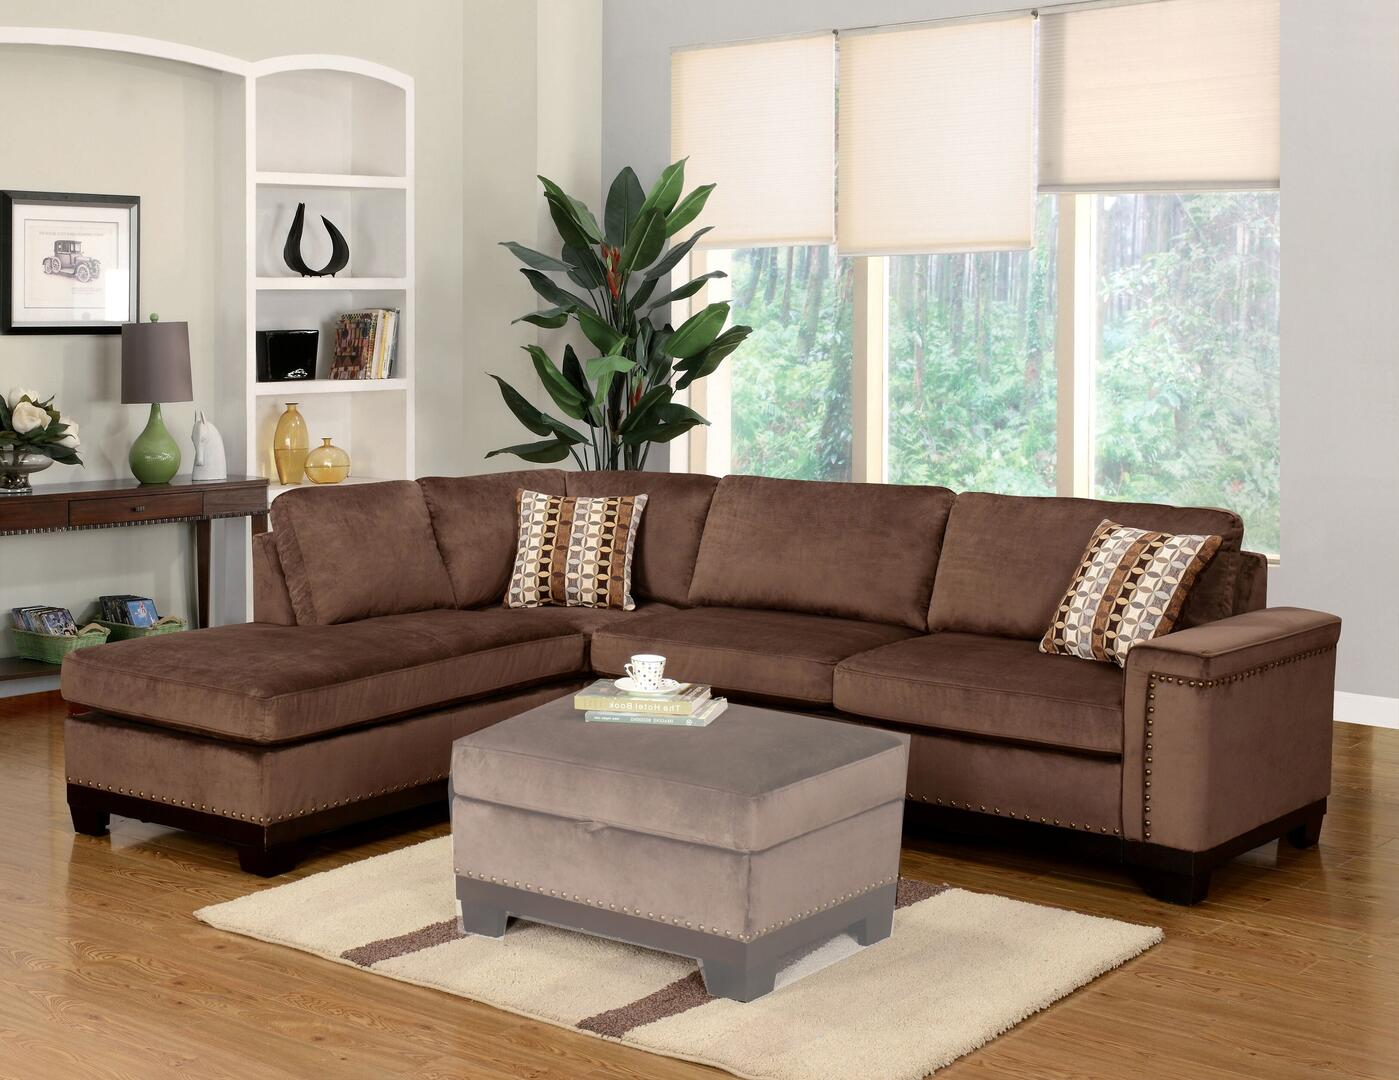 Myco Furniture Op370secbr Opulence Series Sofa And Chaise